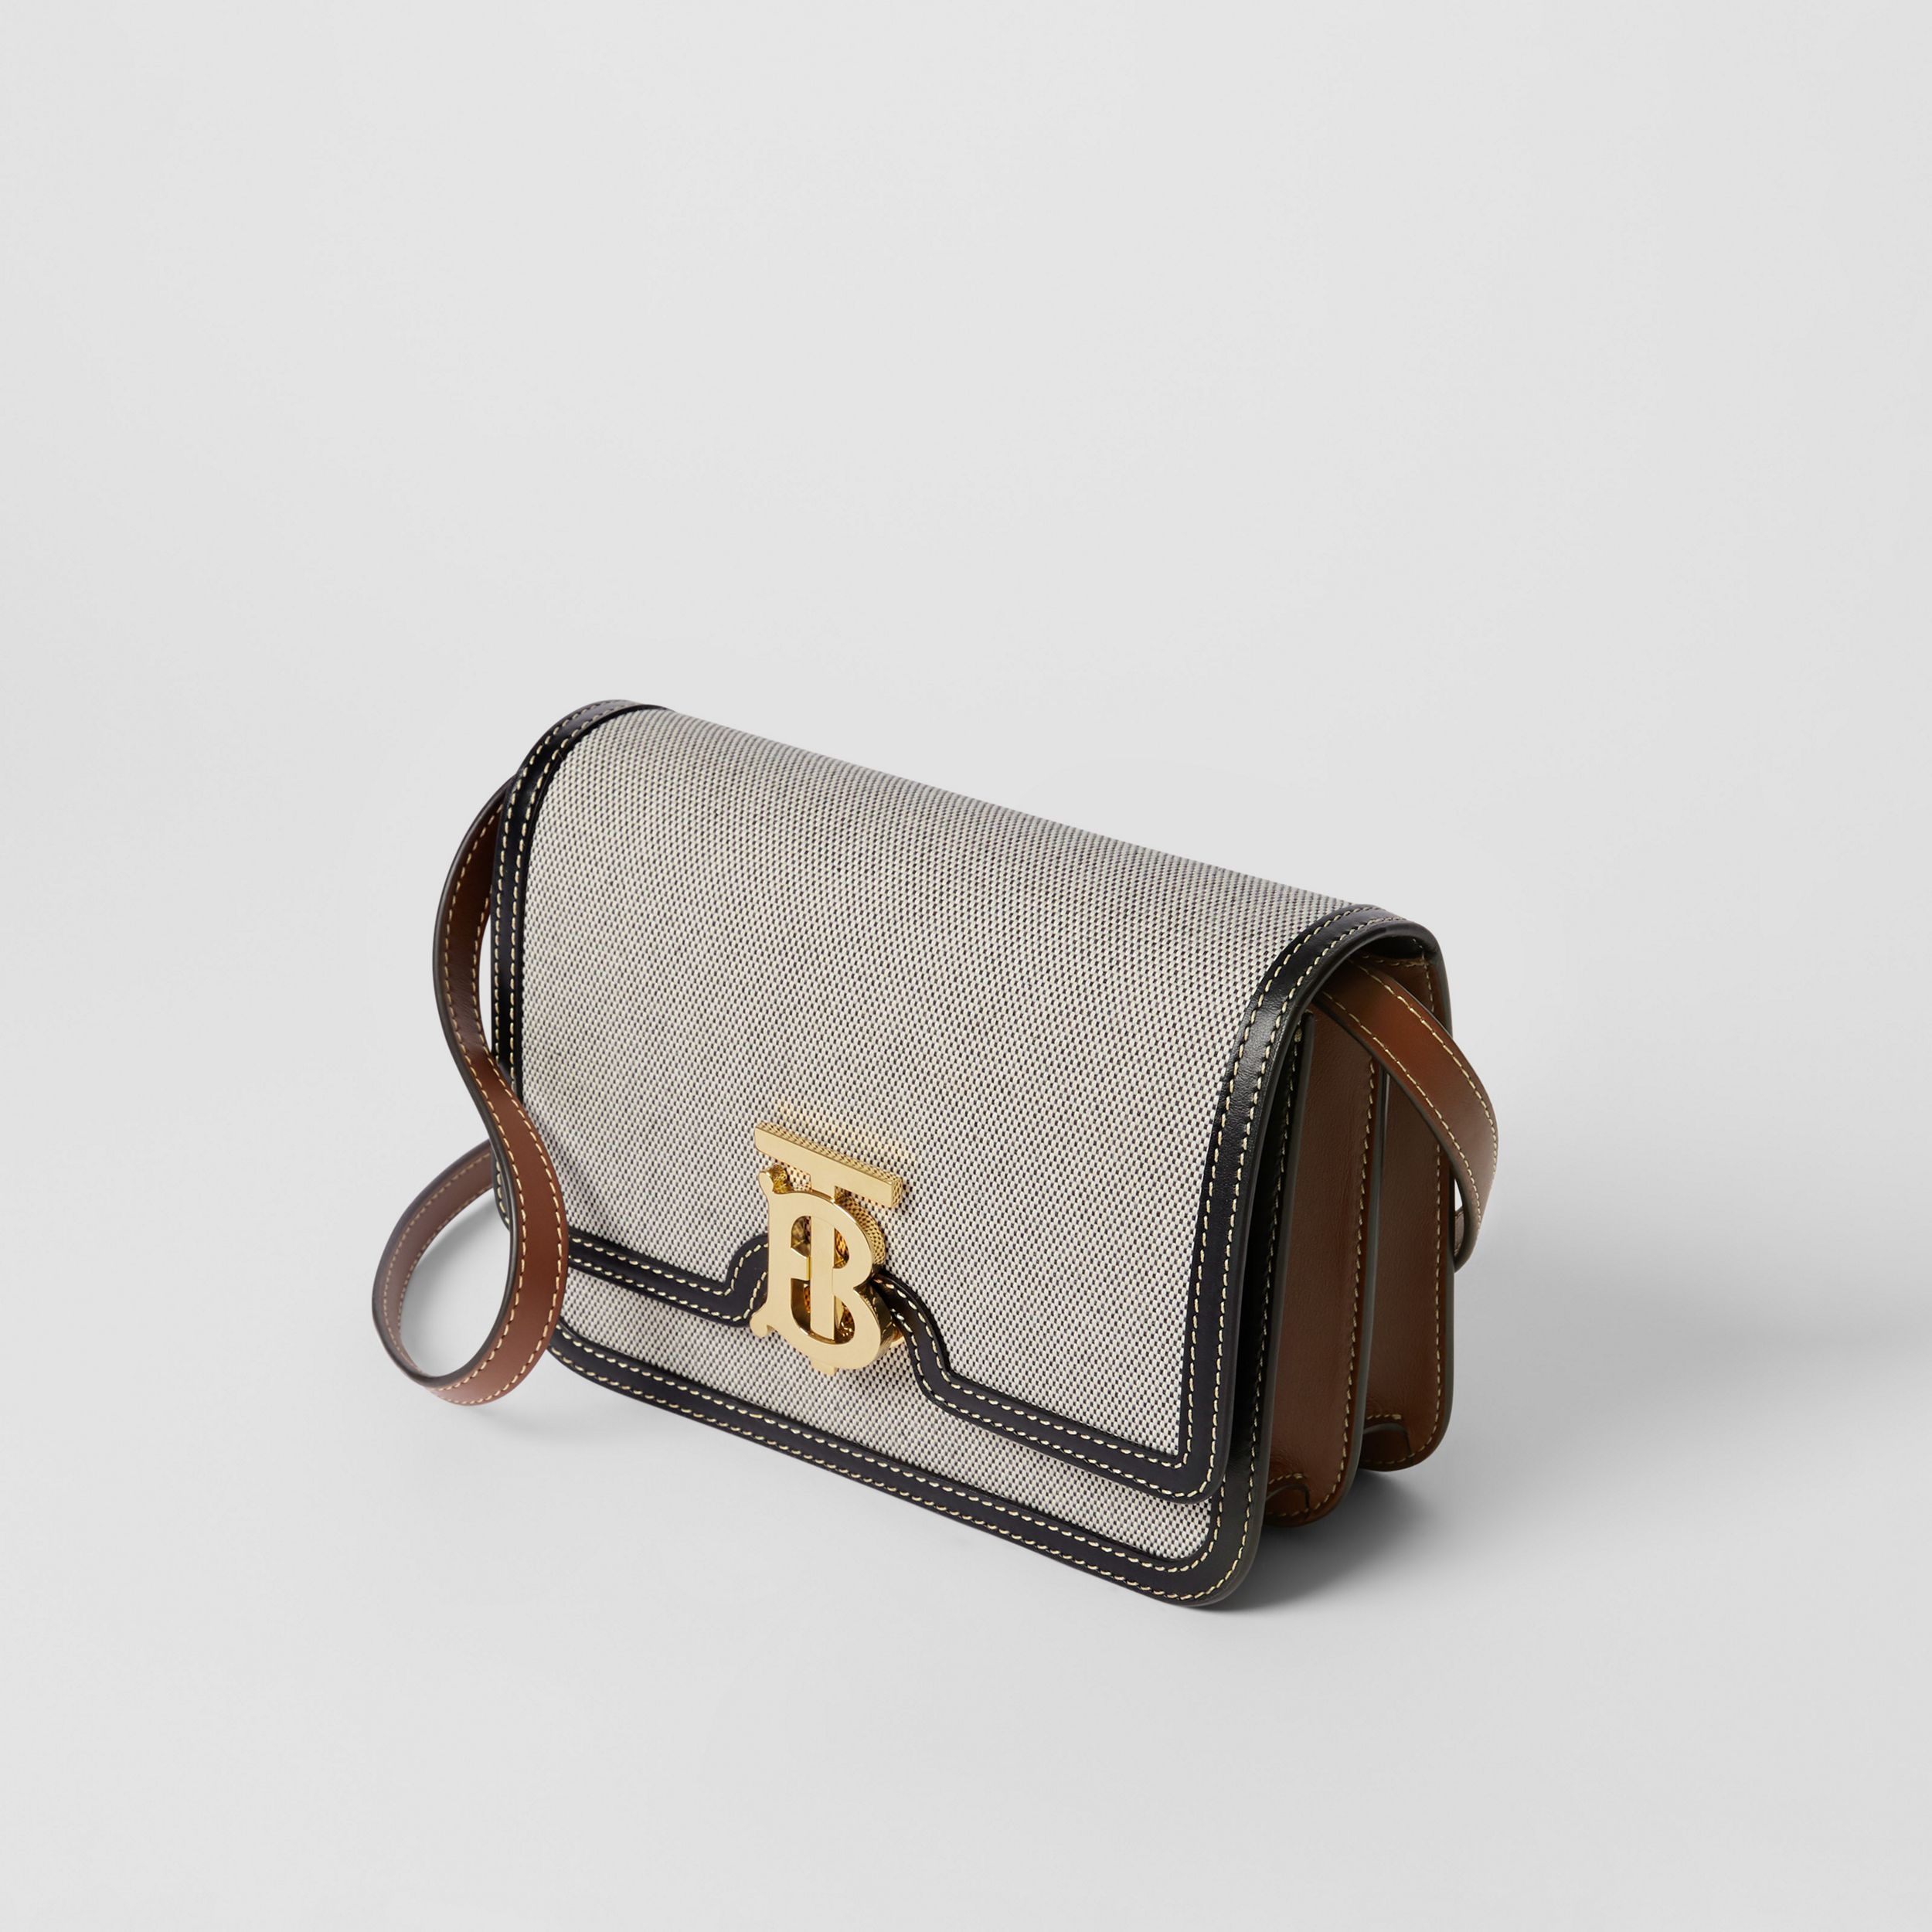 Small Tri-tone Canvas and Leather TB Bag in Black/tan - Women | Burberry - 4